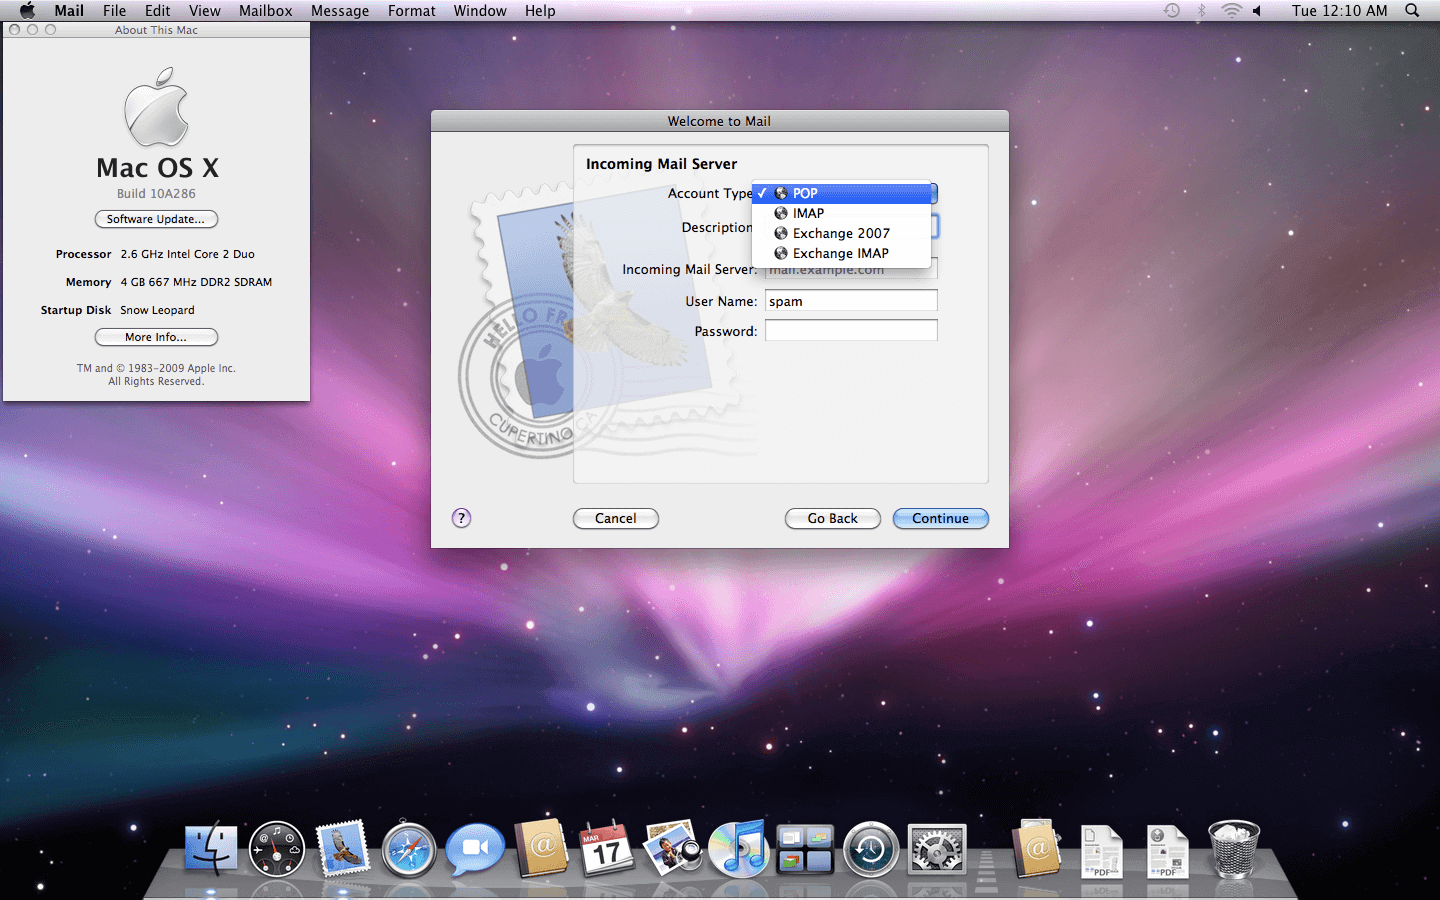 STEP 1. Prepare your Mac for installation